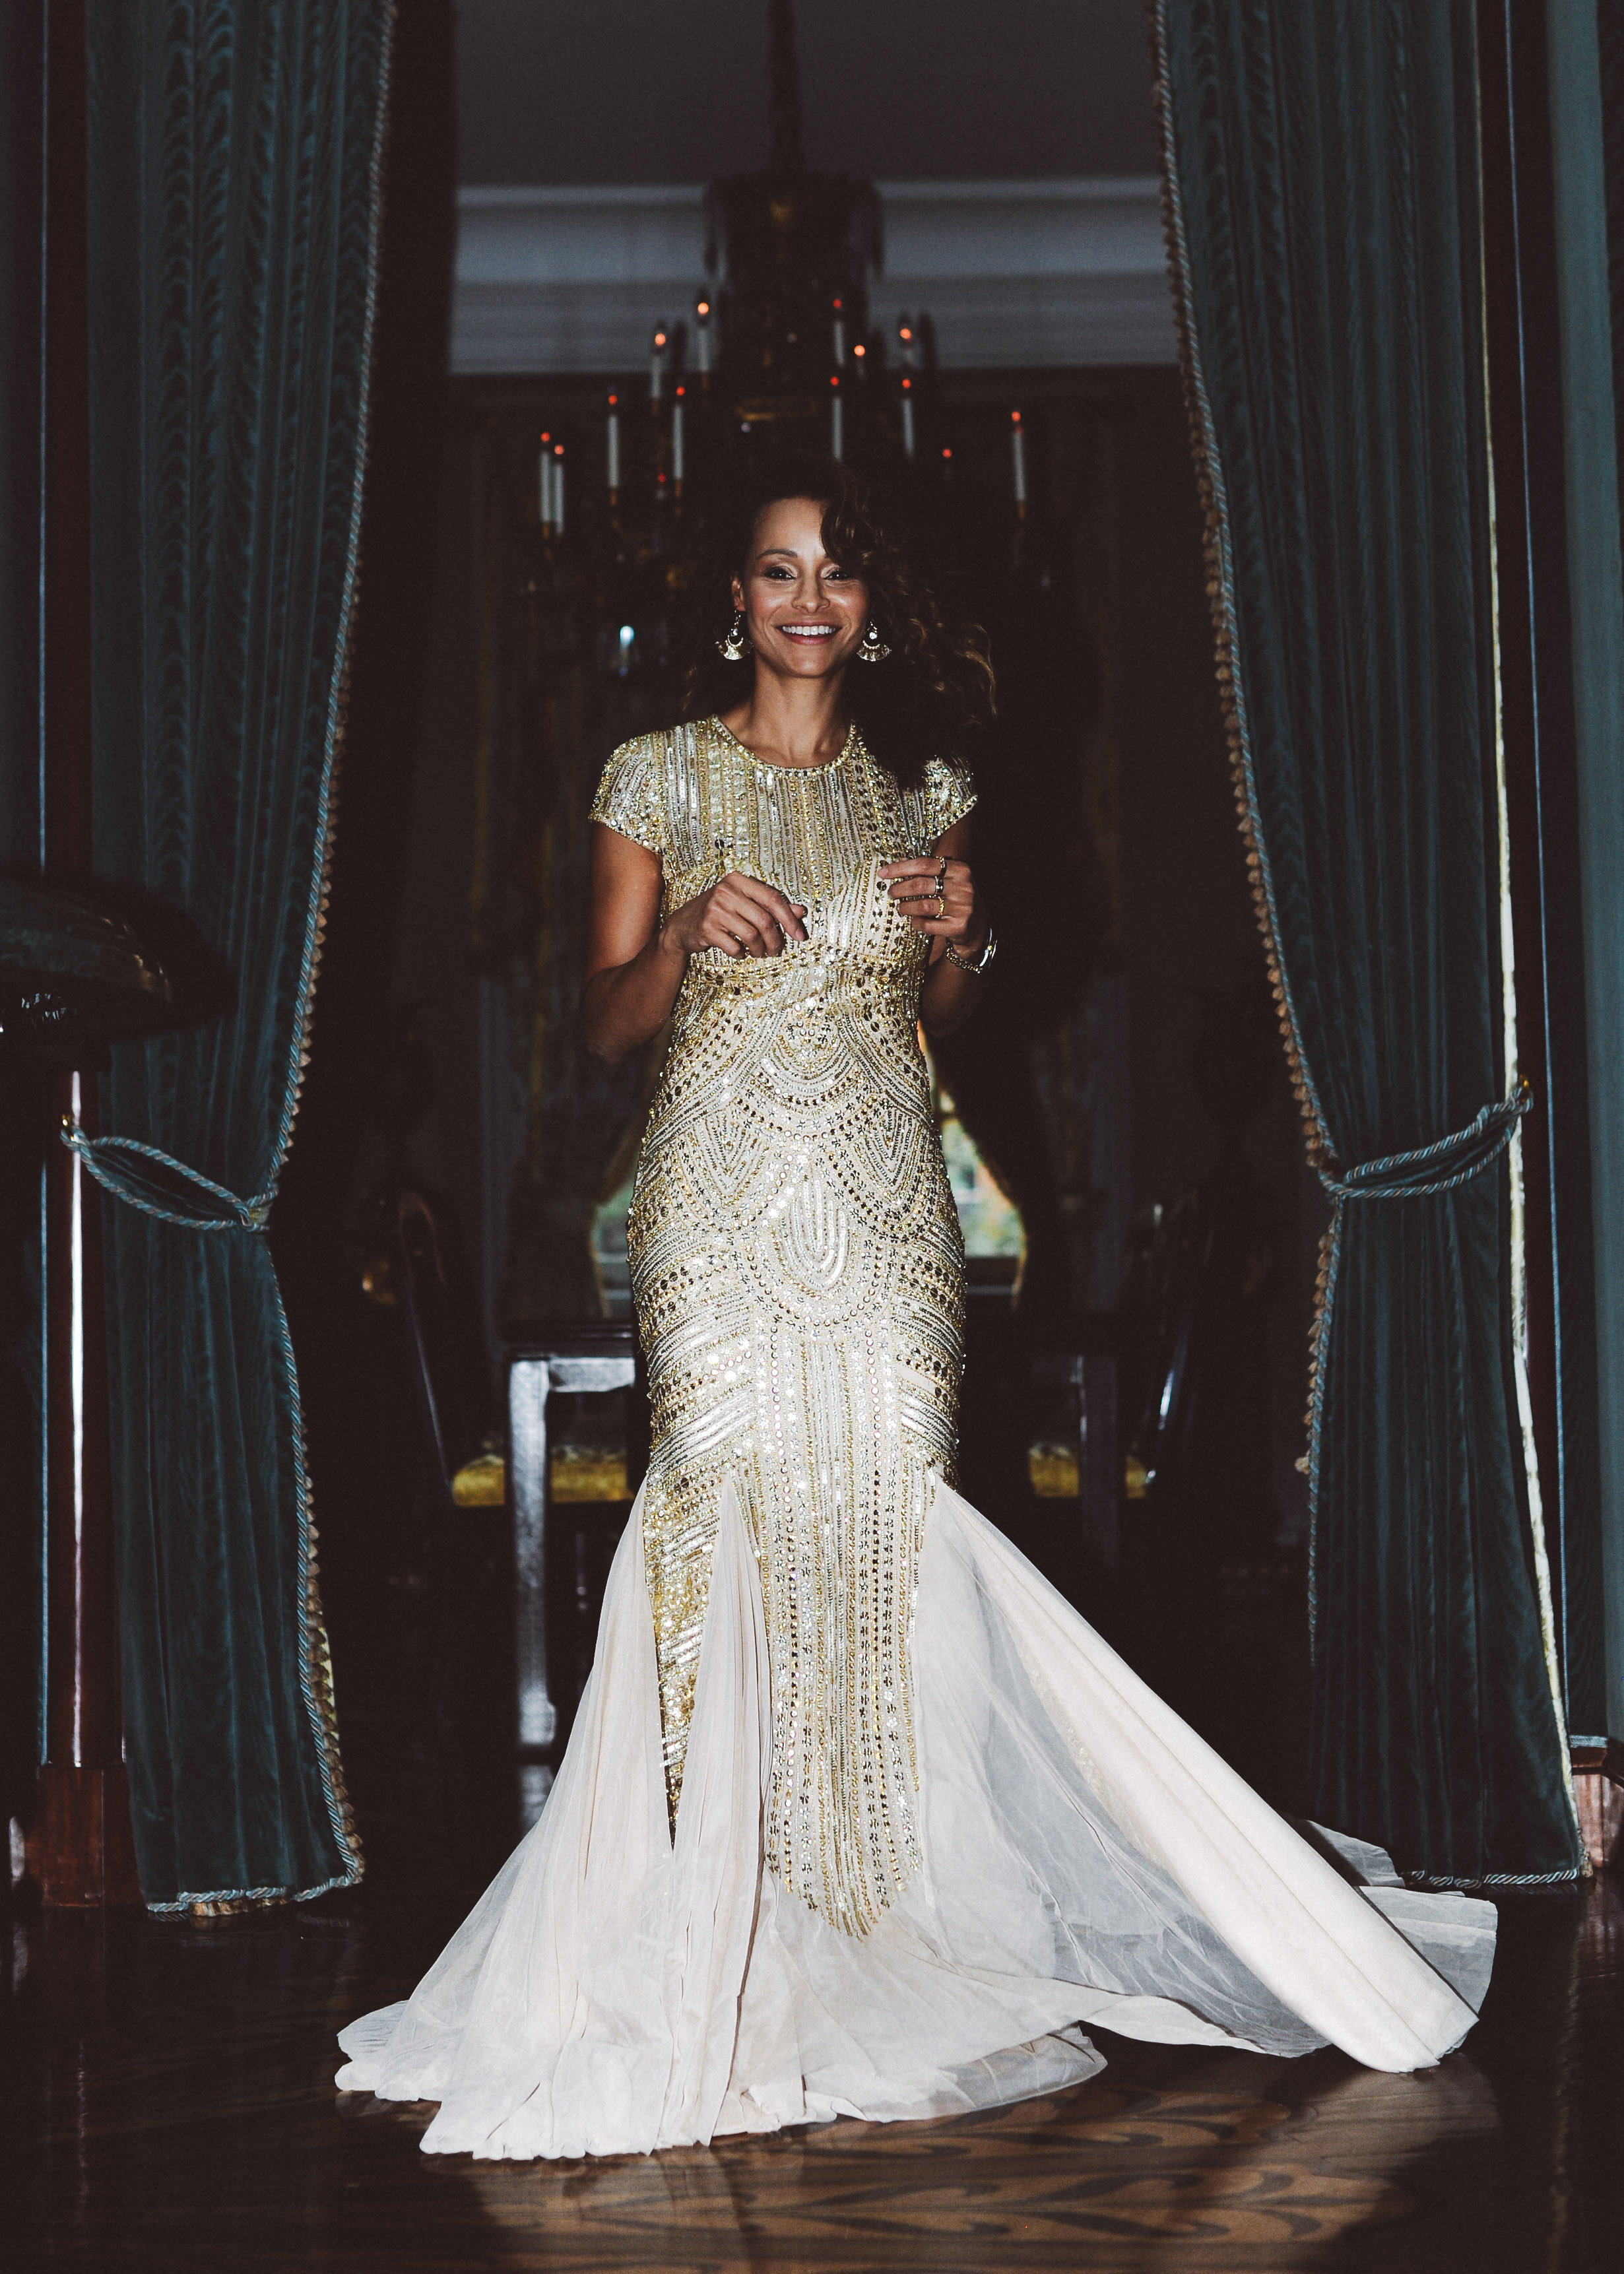 Fashion-Blogger-Sai-De-Silva-Talks-Old-Hollywood-Gowns-And-Dress-For ...